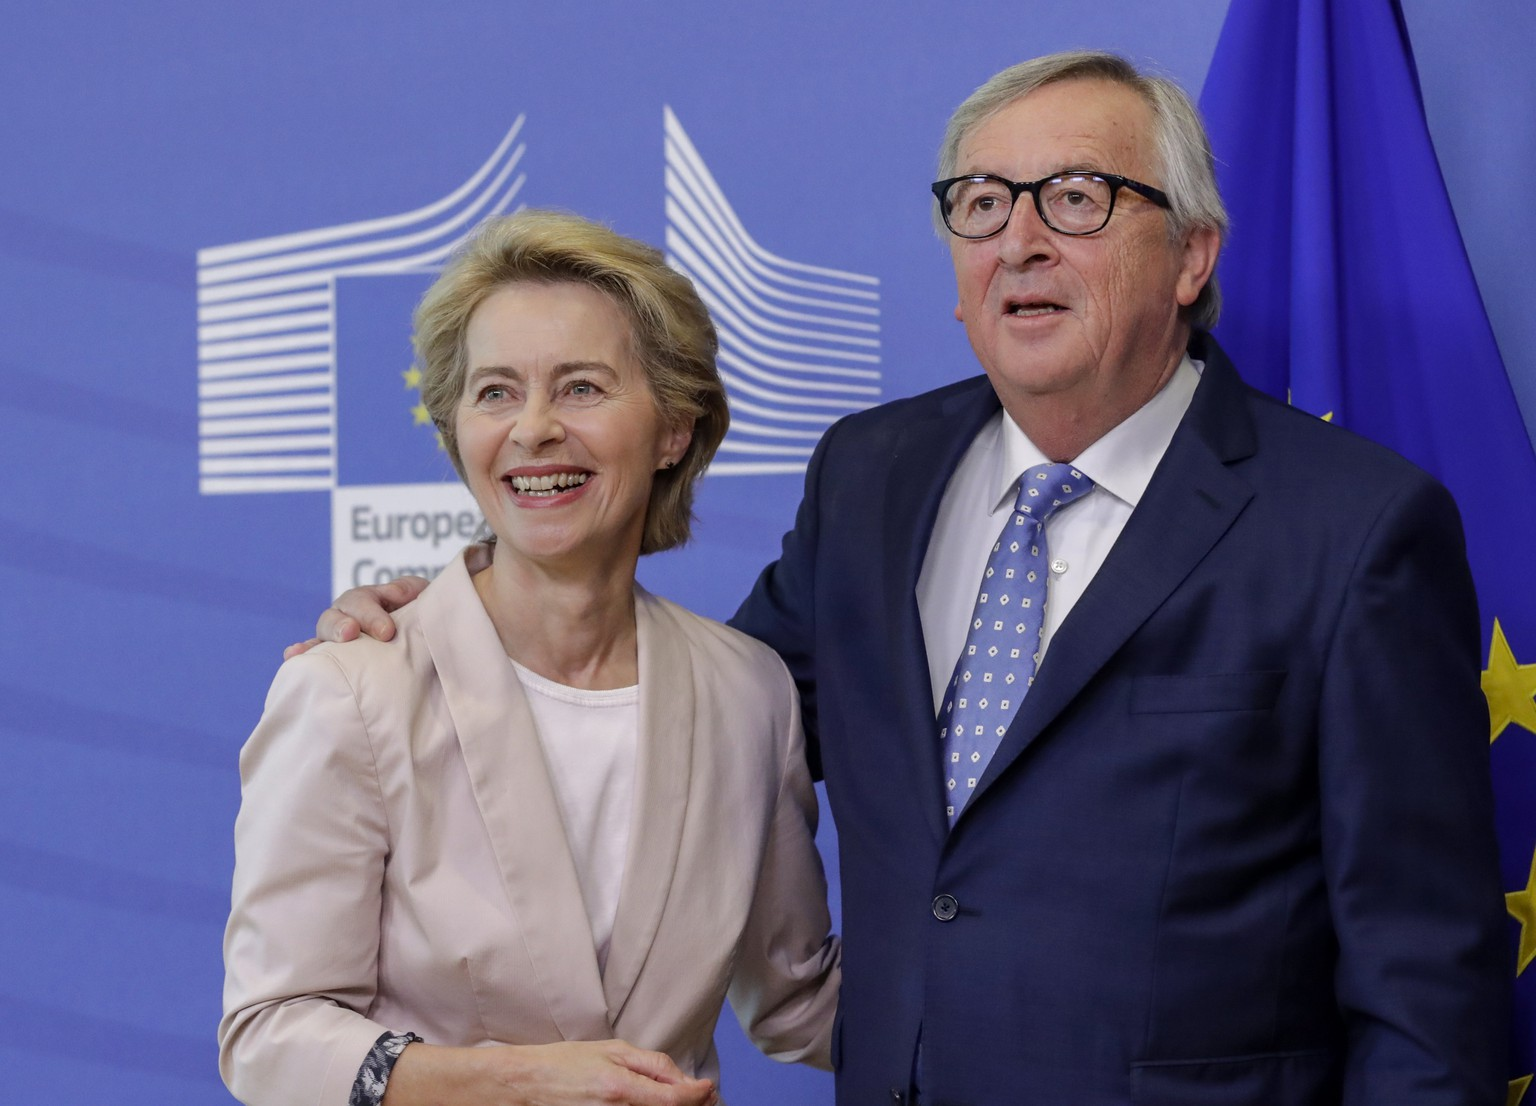 epa07693866 Ursula von der Leyen (L), the nominated President of the European Commission is welcomed by European Commission President Jean-Claude Juncker during a visit at the European Commission in Brussels, Belgium, 04 July 2019.  EPA/OLIVIER HOSLET